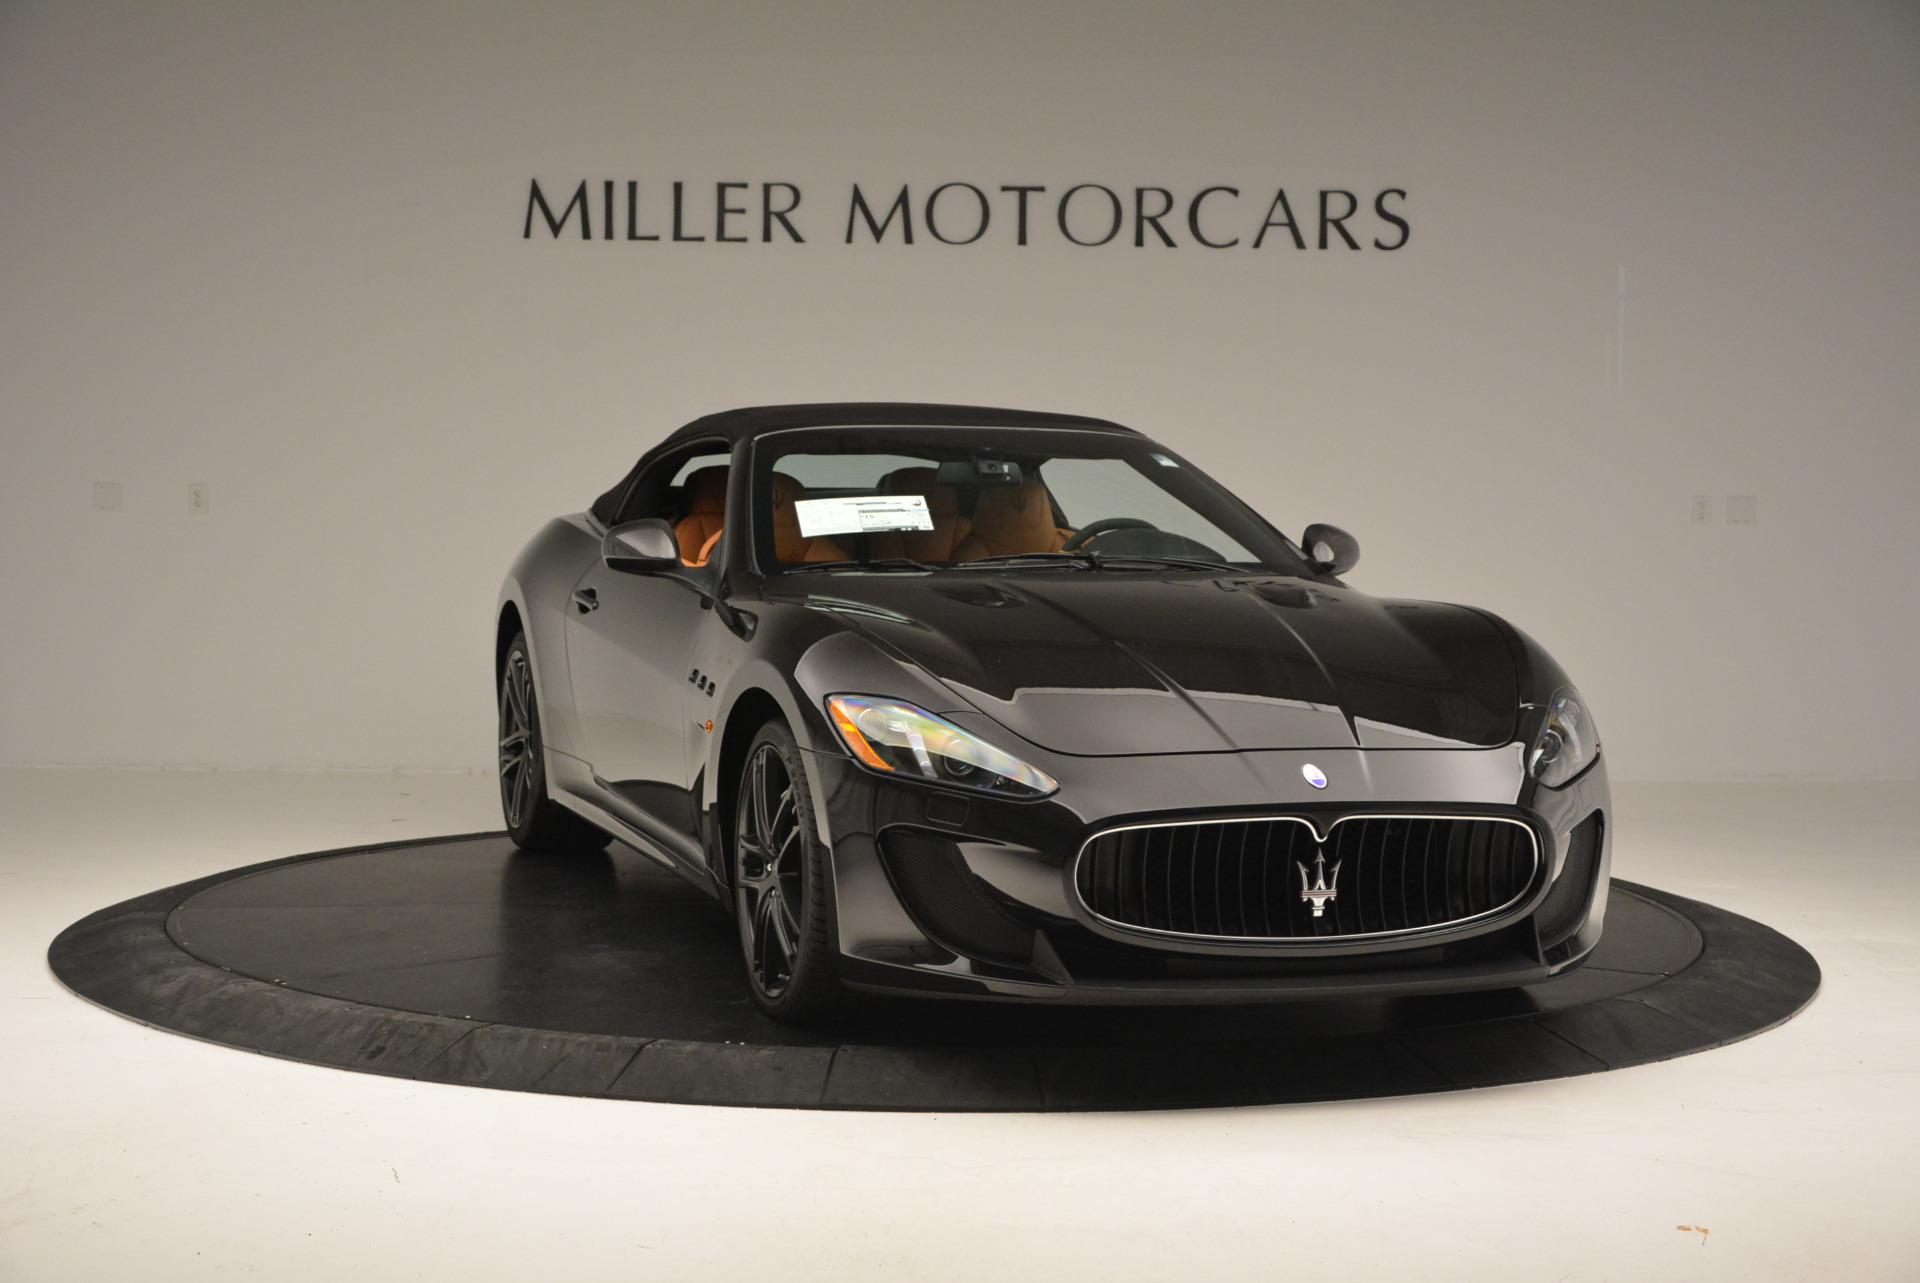 New 2017 Maserati GranTurismo MC CONVERTIBLE For Sale In Greenwich, CT 596_p16